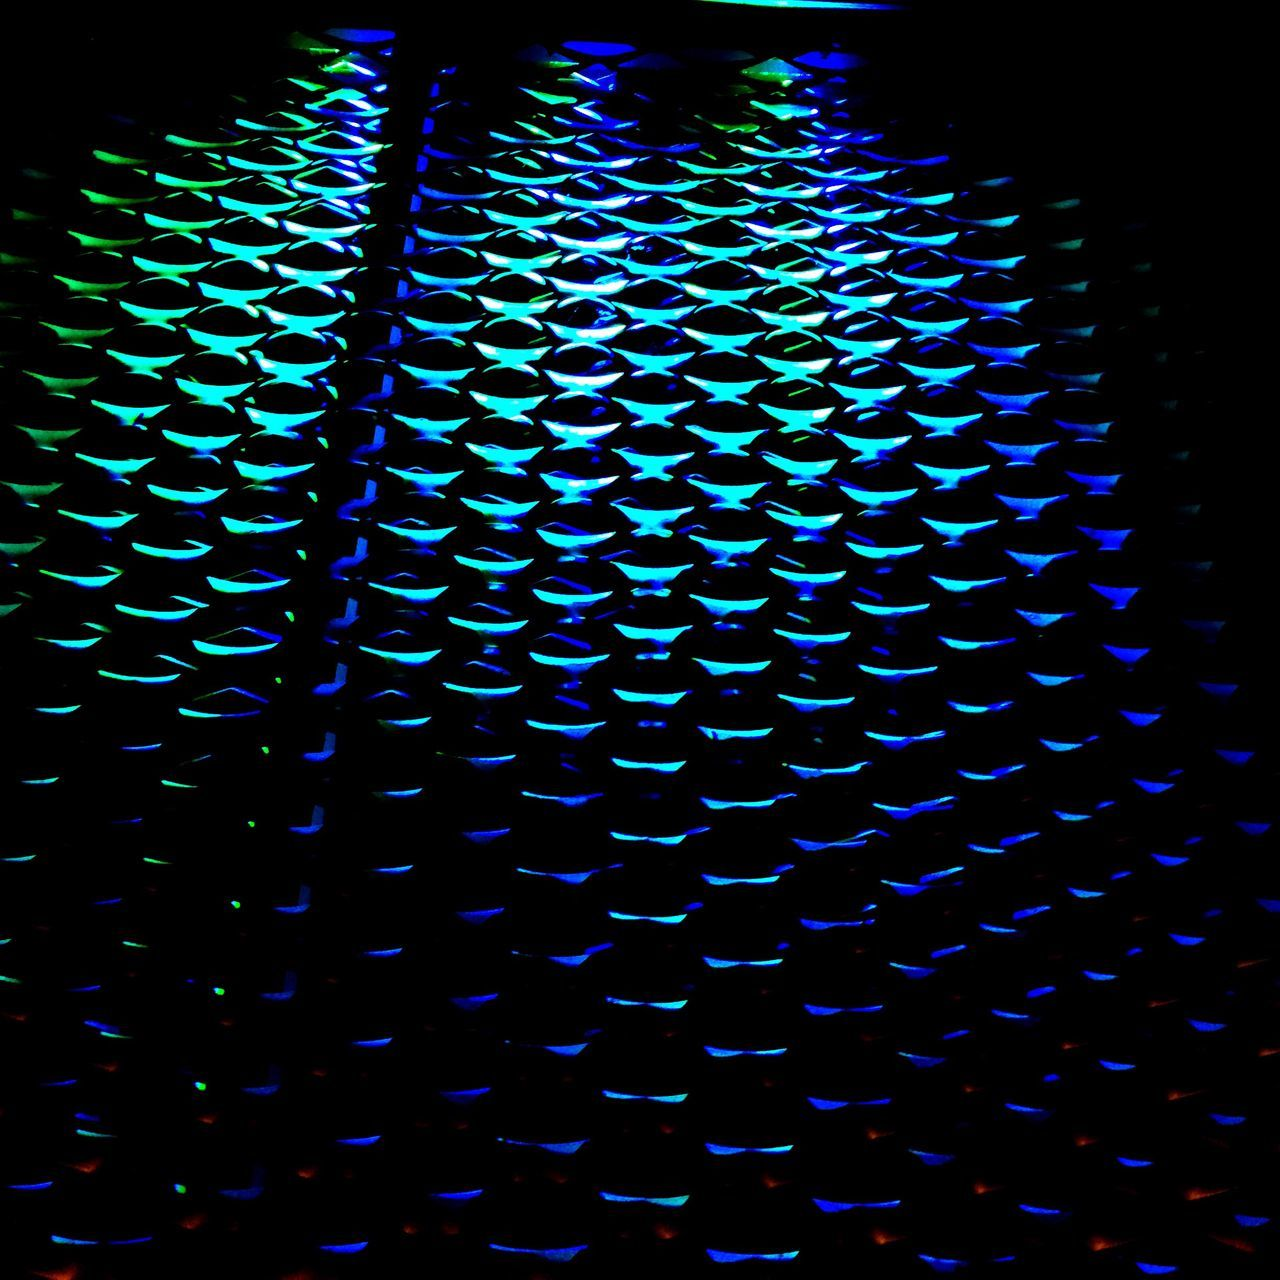 pattern, backgrounds, indoors, no people, multi colored, full frame, illuminated, close-up, night